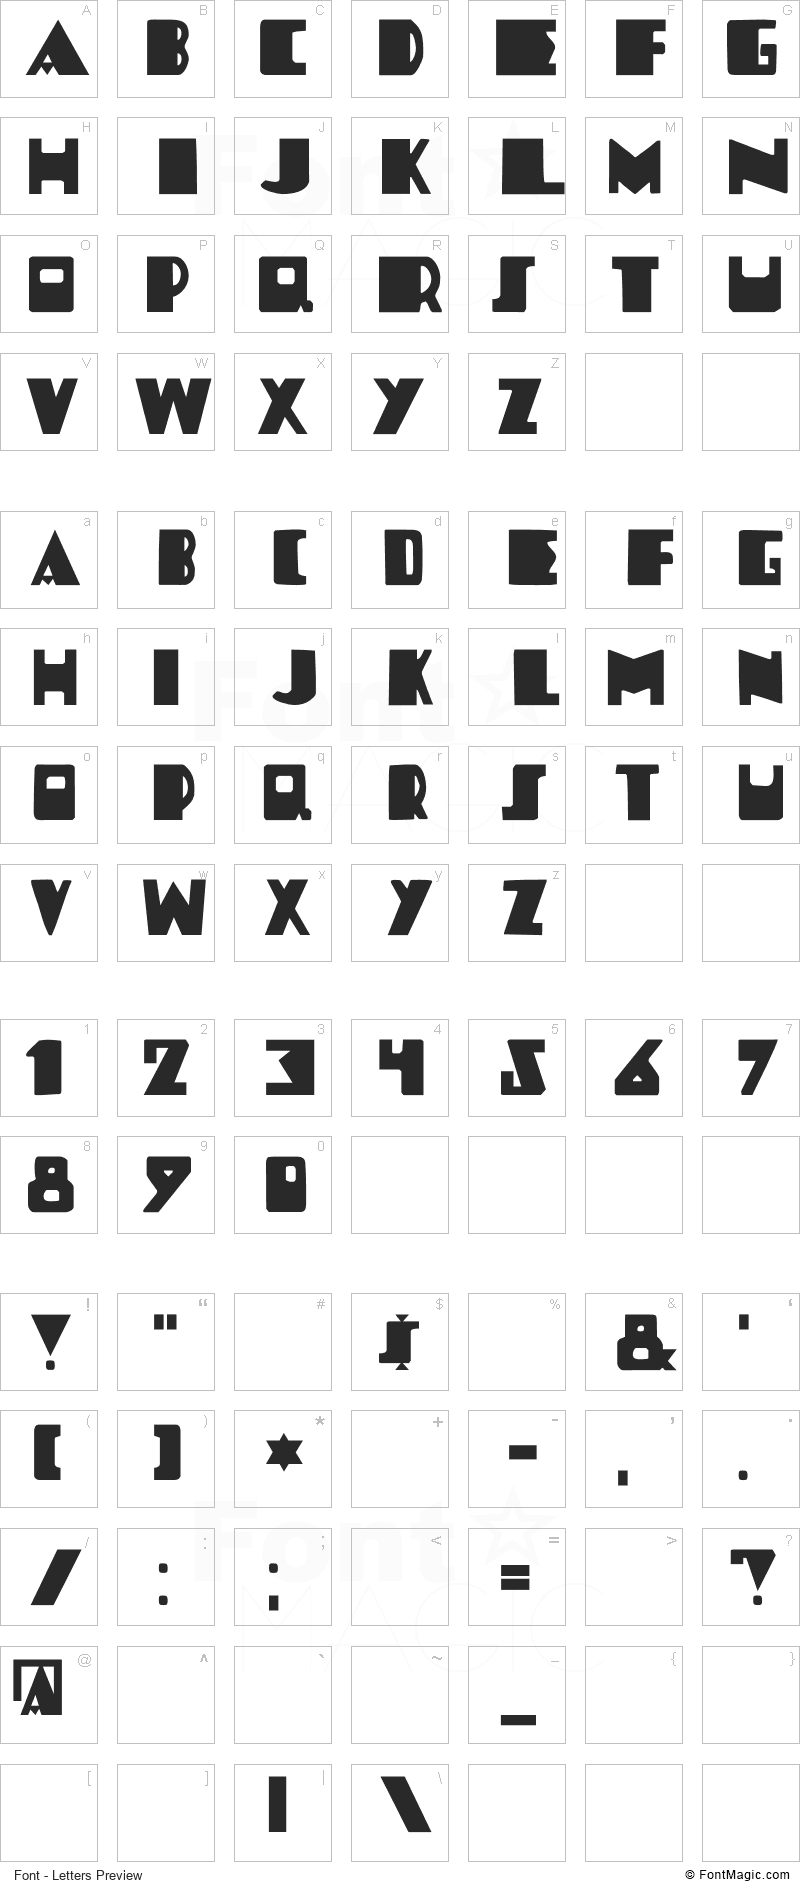 DK Louise Font - All Latters Preview Chart